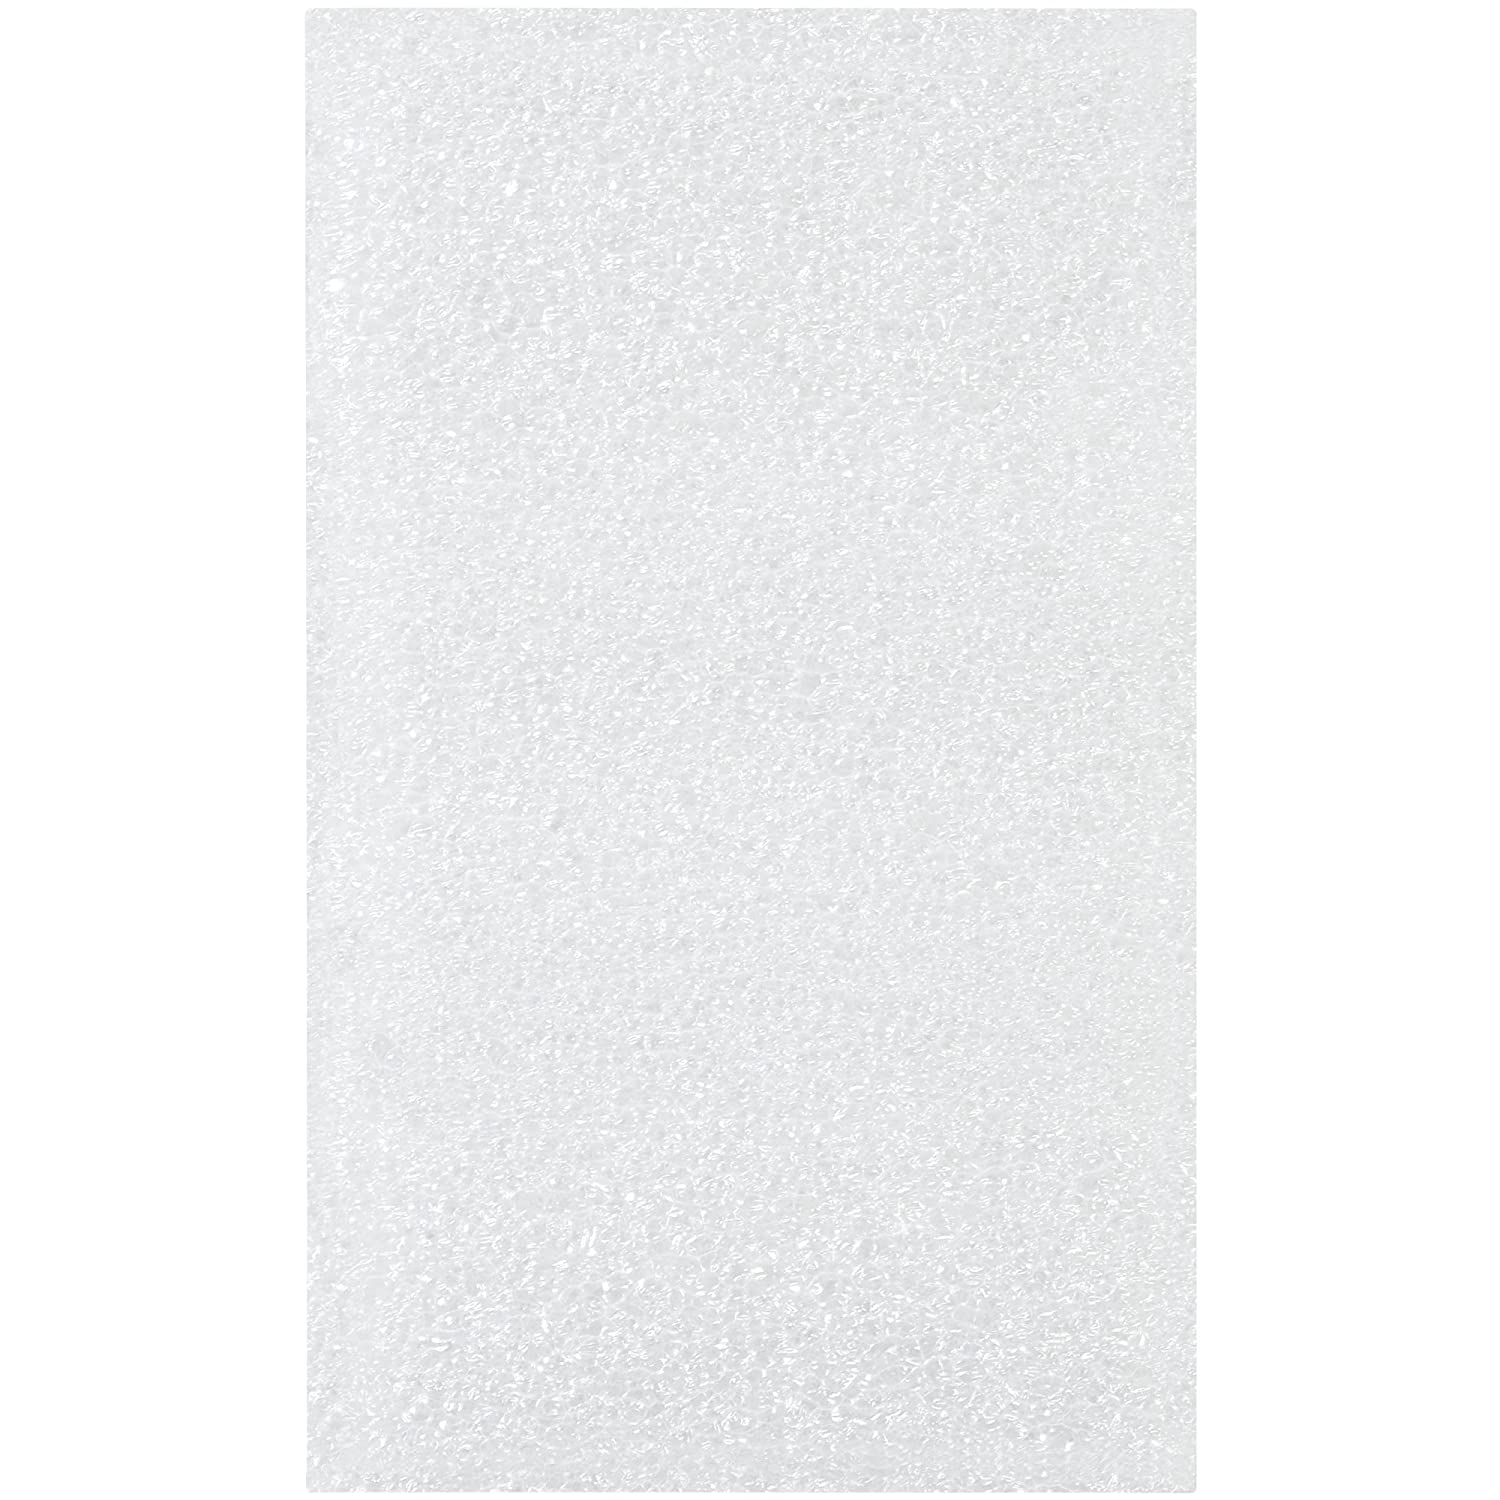 Boxes Fast BFFP35 Flush Cut Foam Pouches White Pack of 500 3 x 5